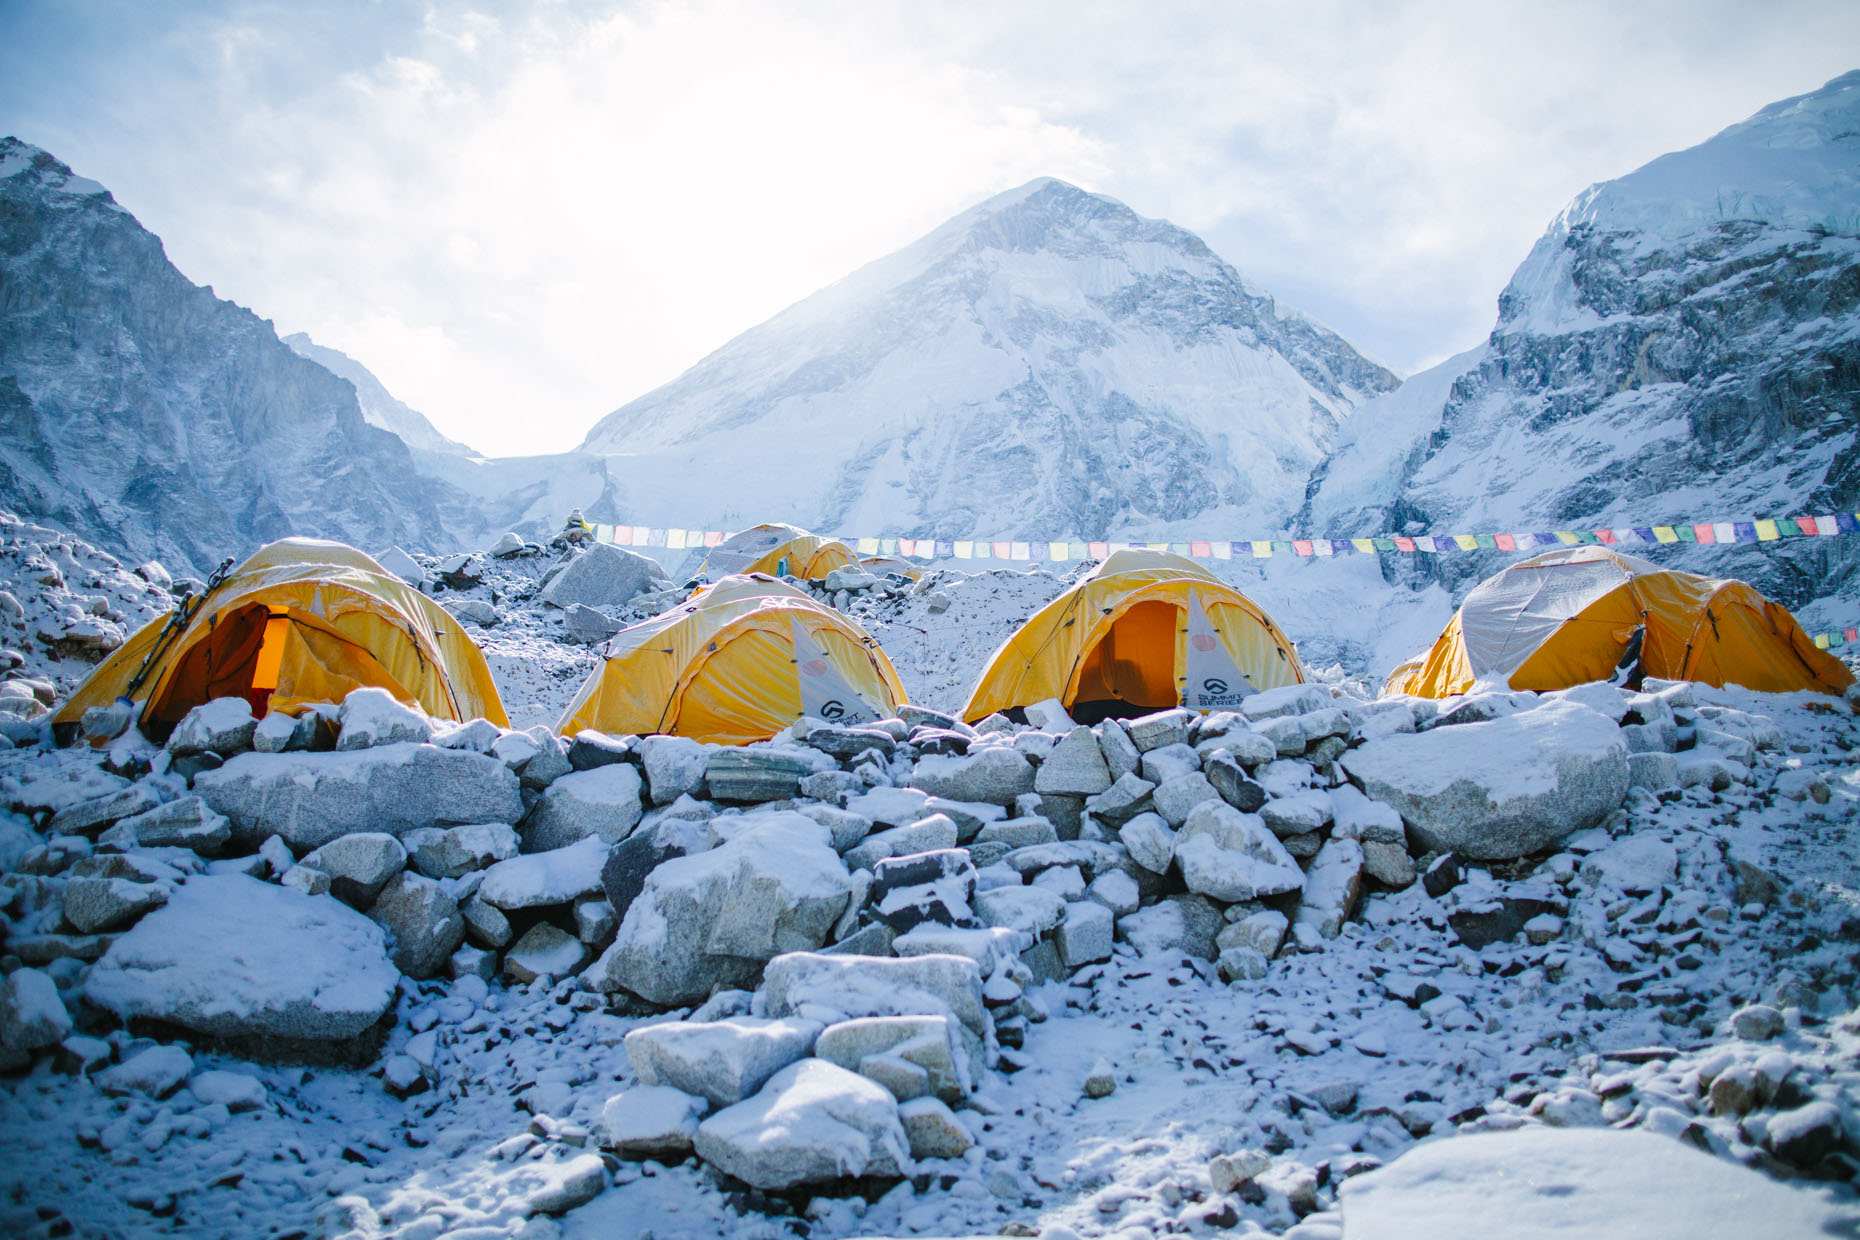 Everest_DX_15.jpg